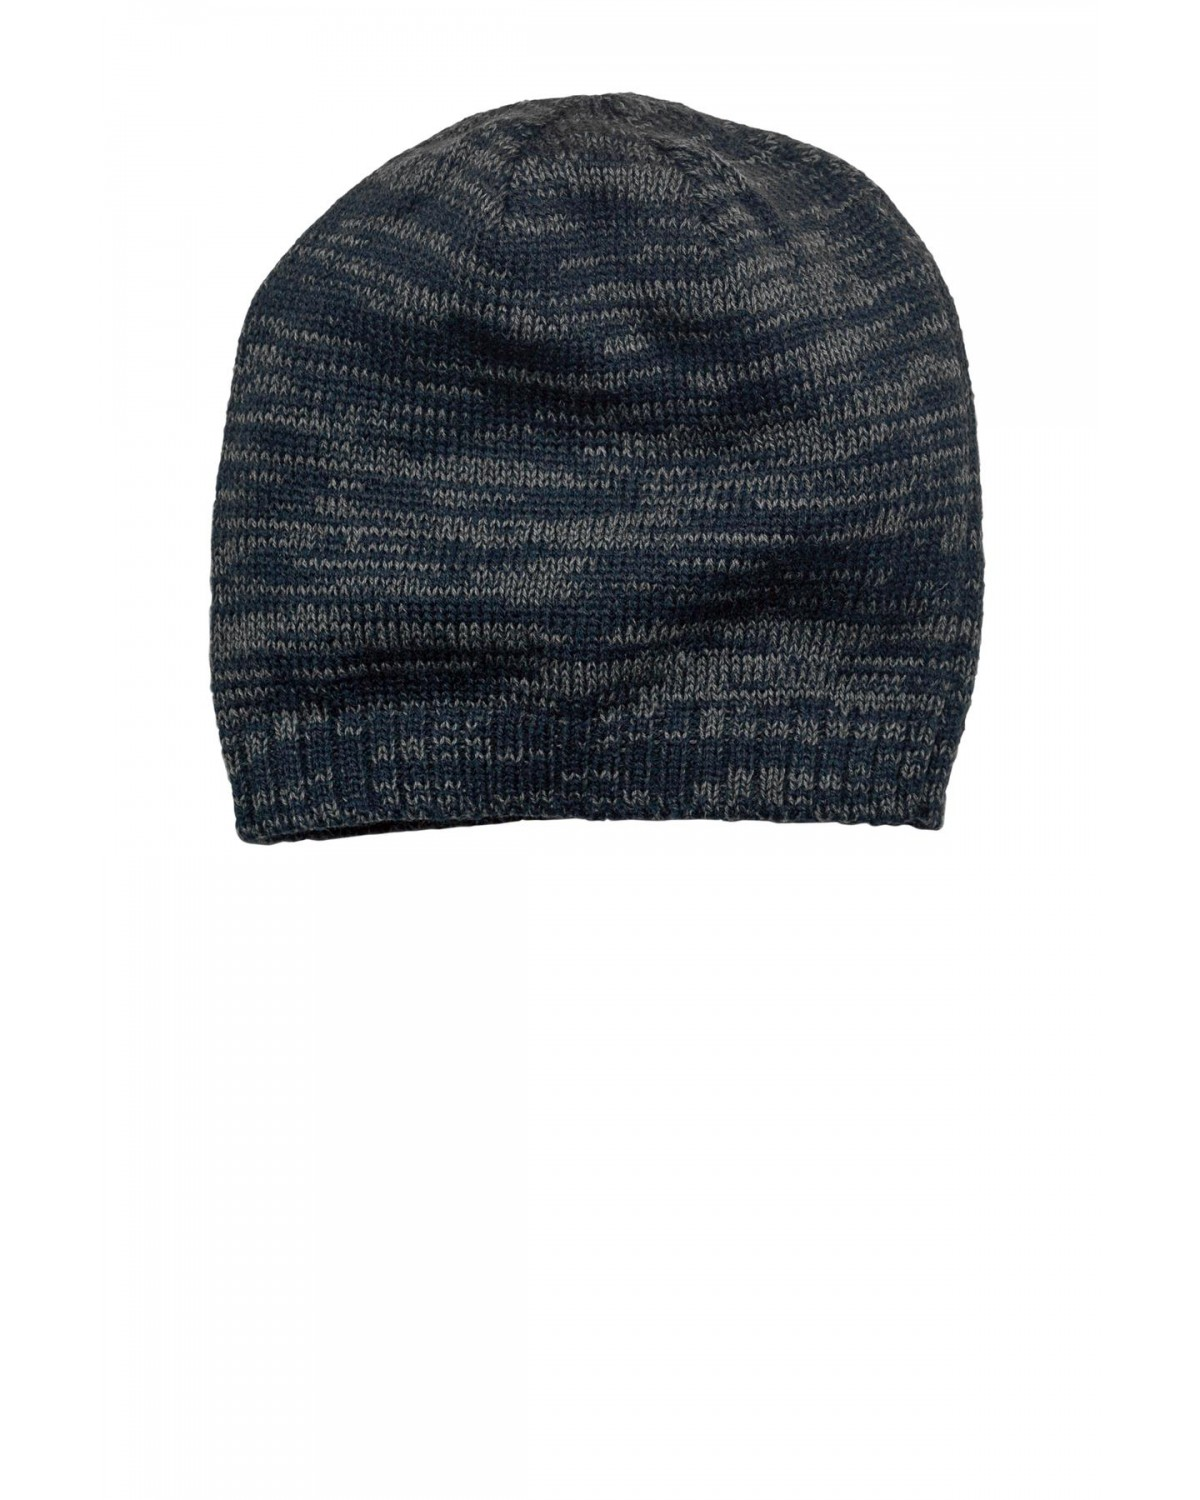 DT620 District New Navy/Charcoal